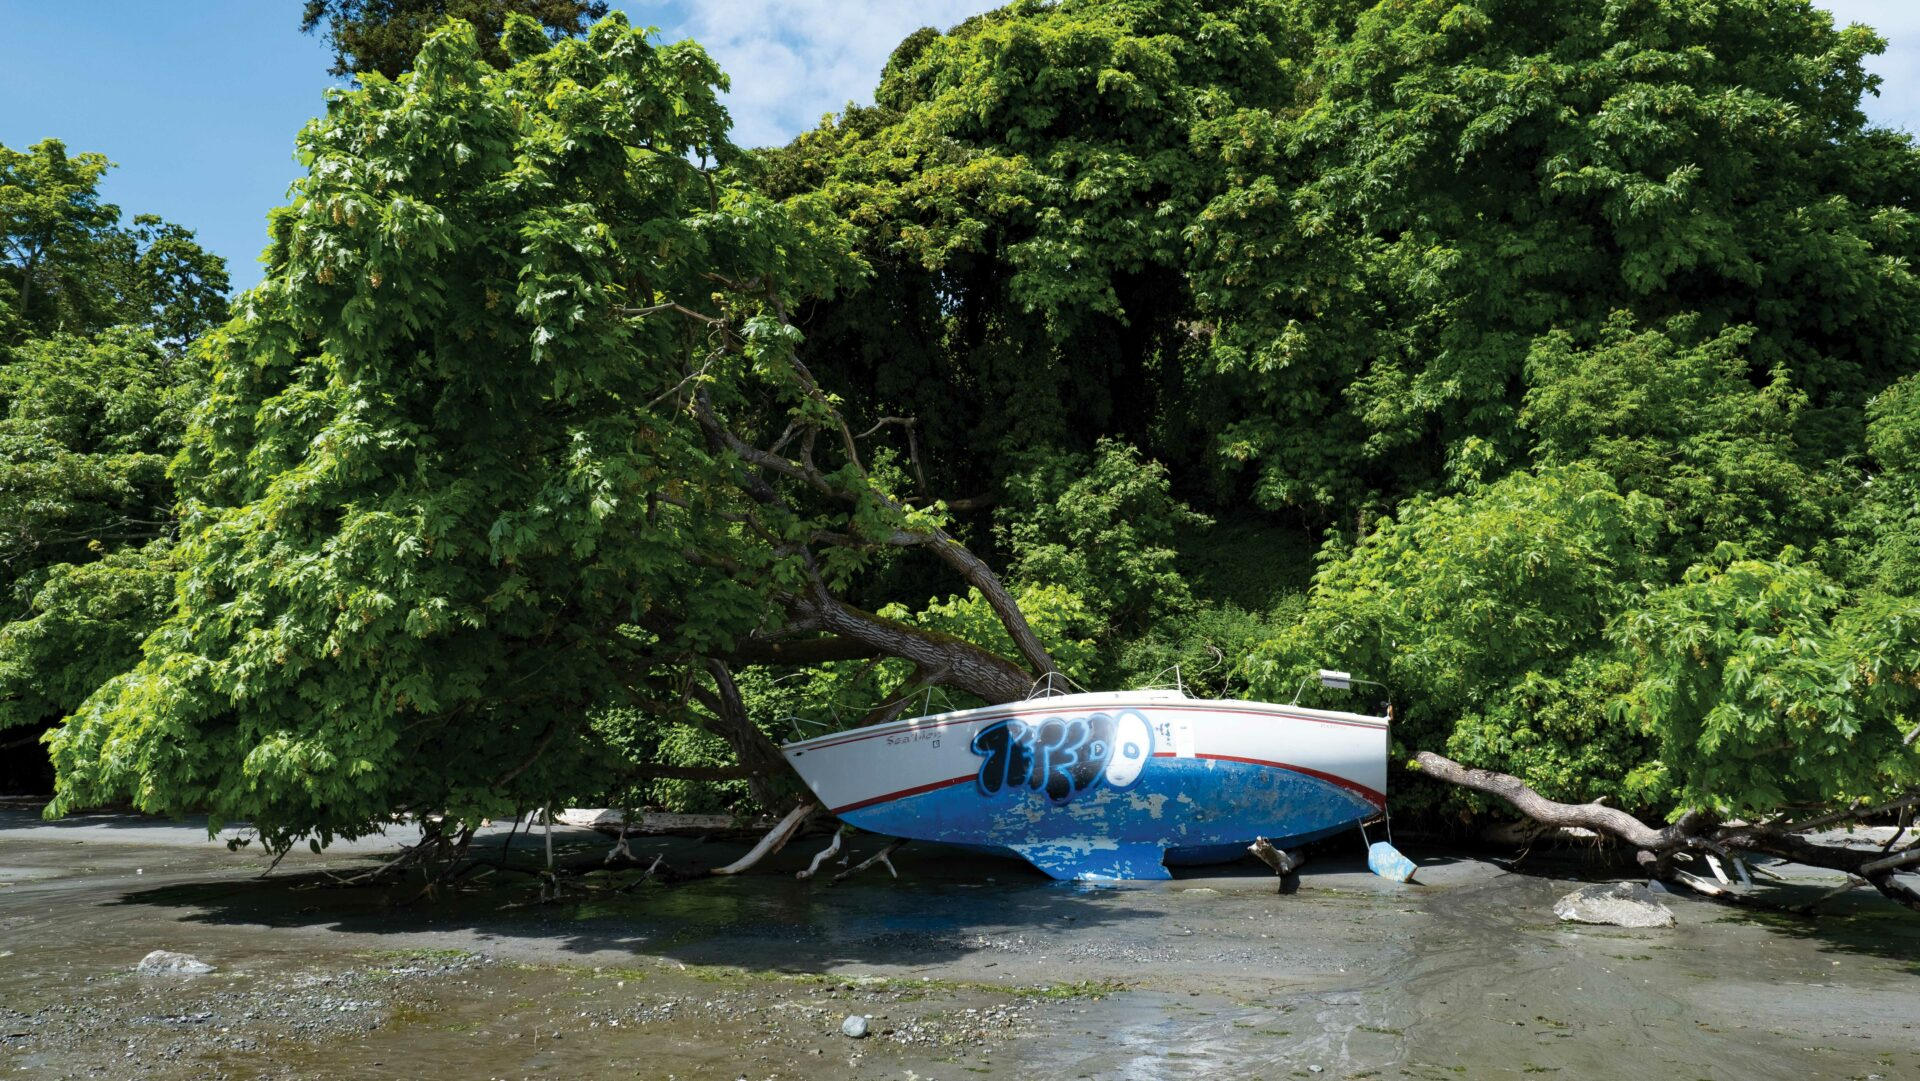 All it takes is one big spring storm, and beaches up and down the coast will see abandoned boats washing ashore. Photo by KK Law.